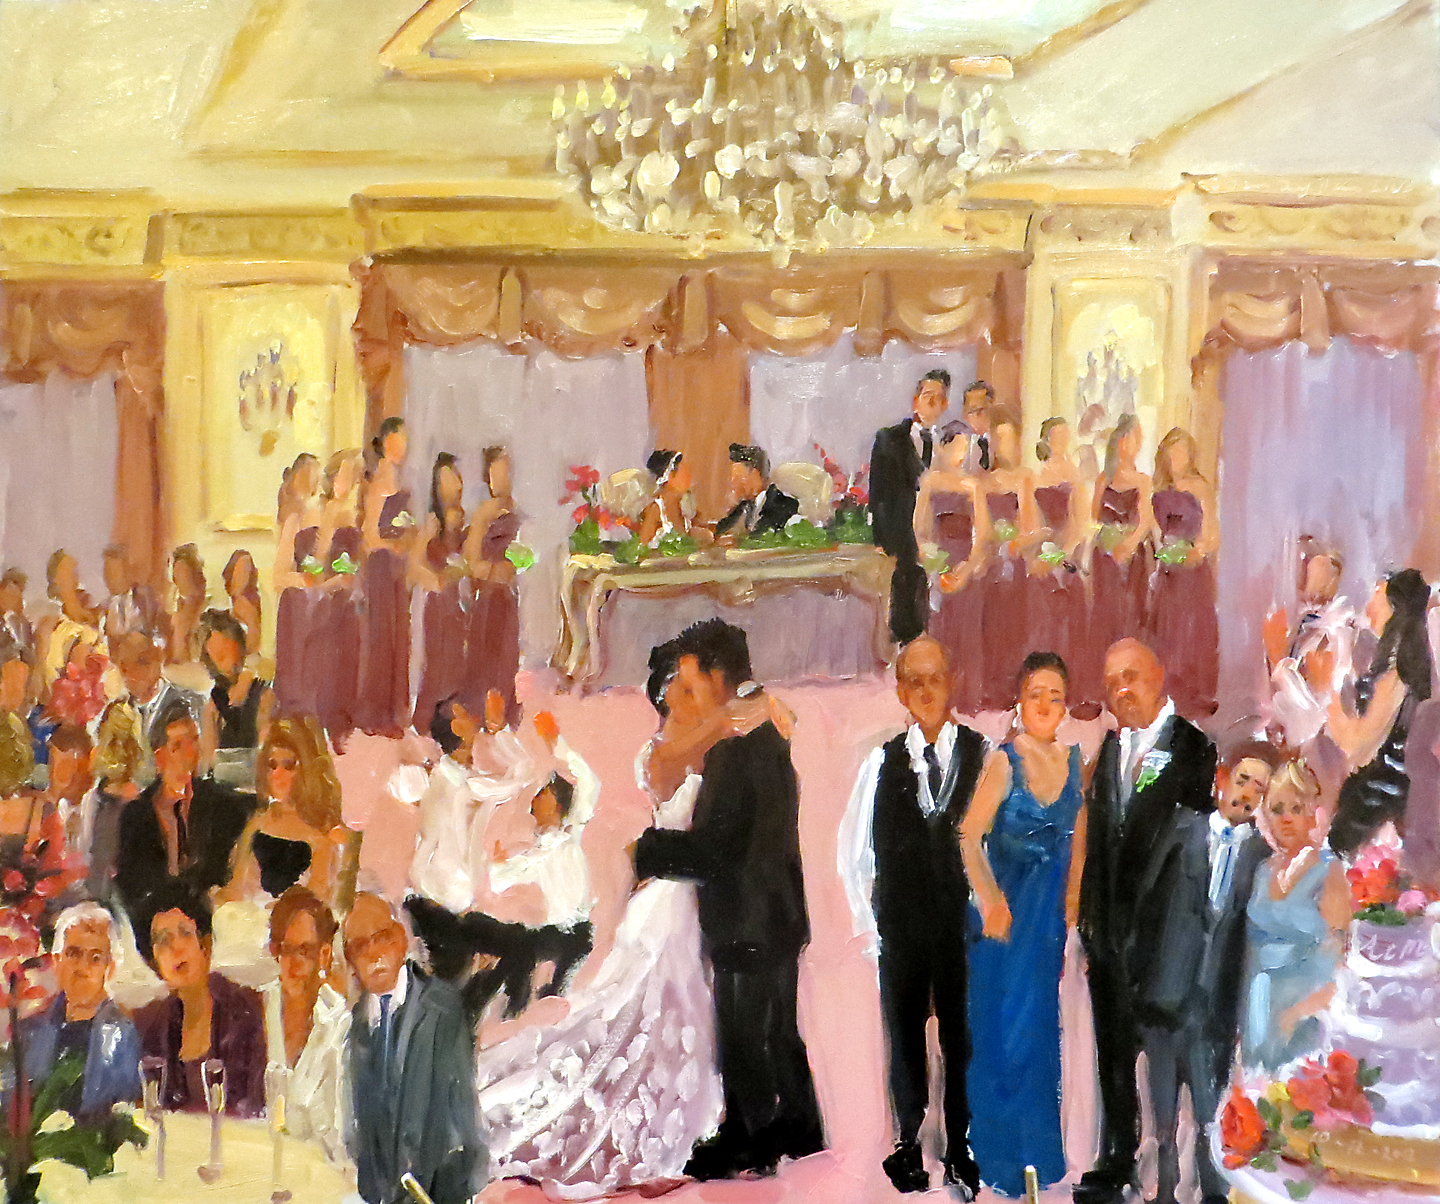 Live Event Artist Painting At An Italian Portuguese Wedding In Nj